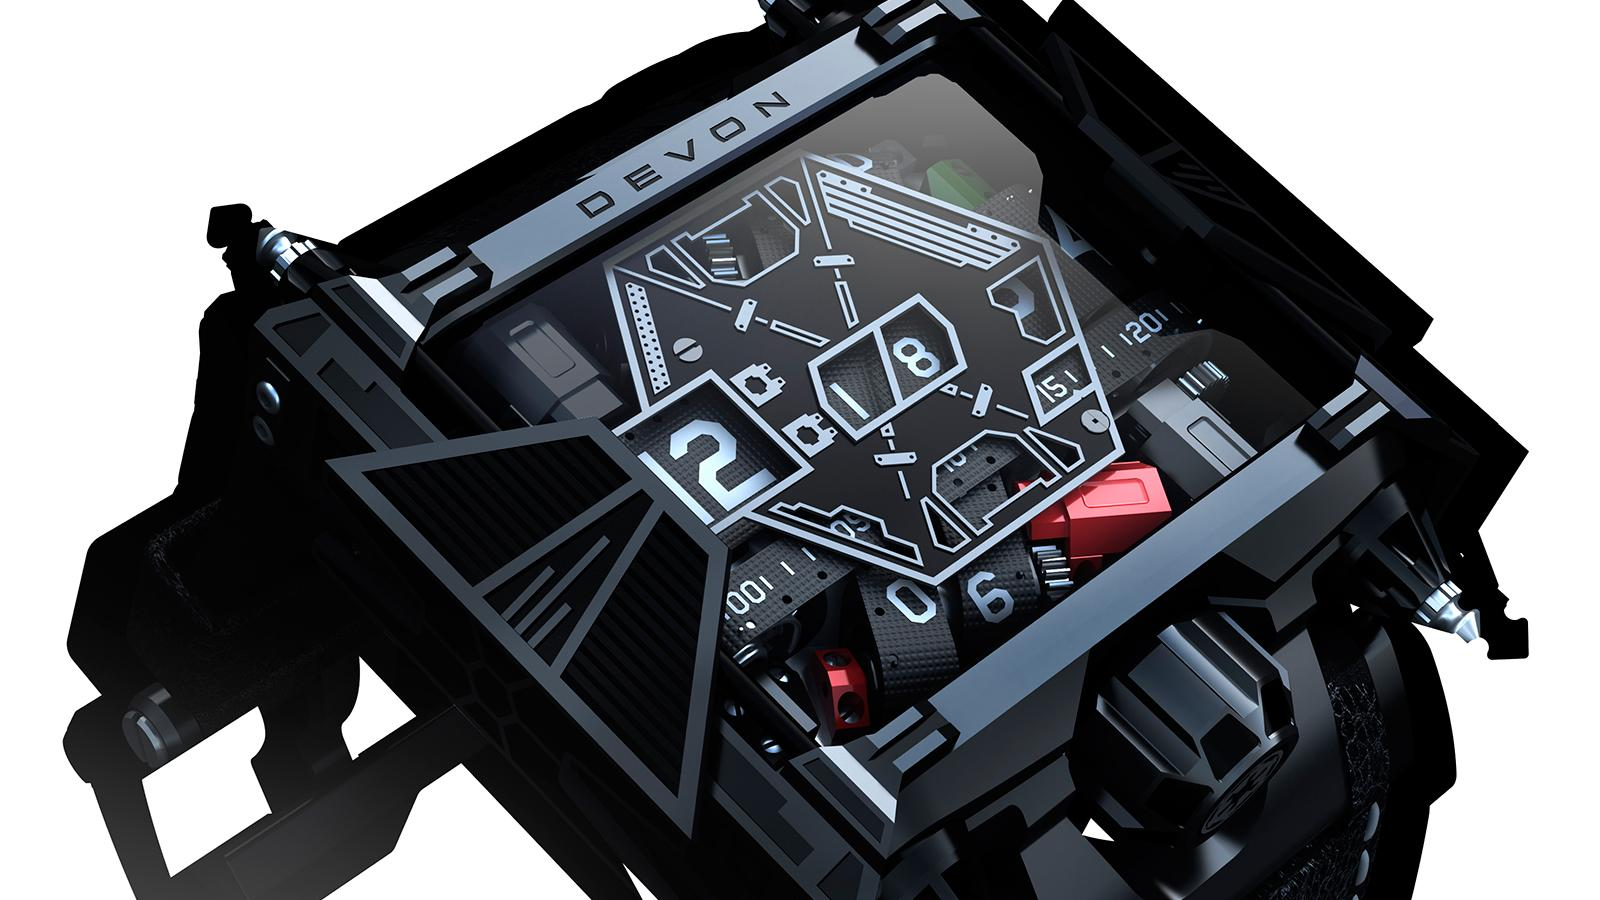 Devon Works' Star Wars Edition Watch Feels The Force